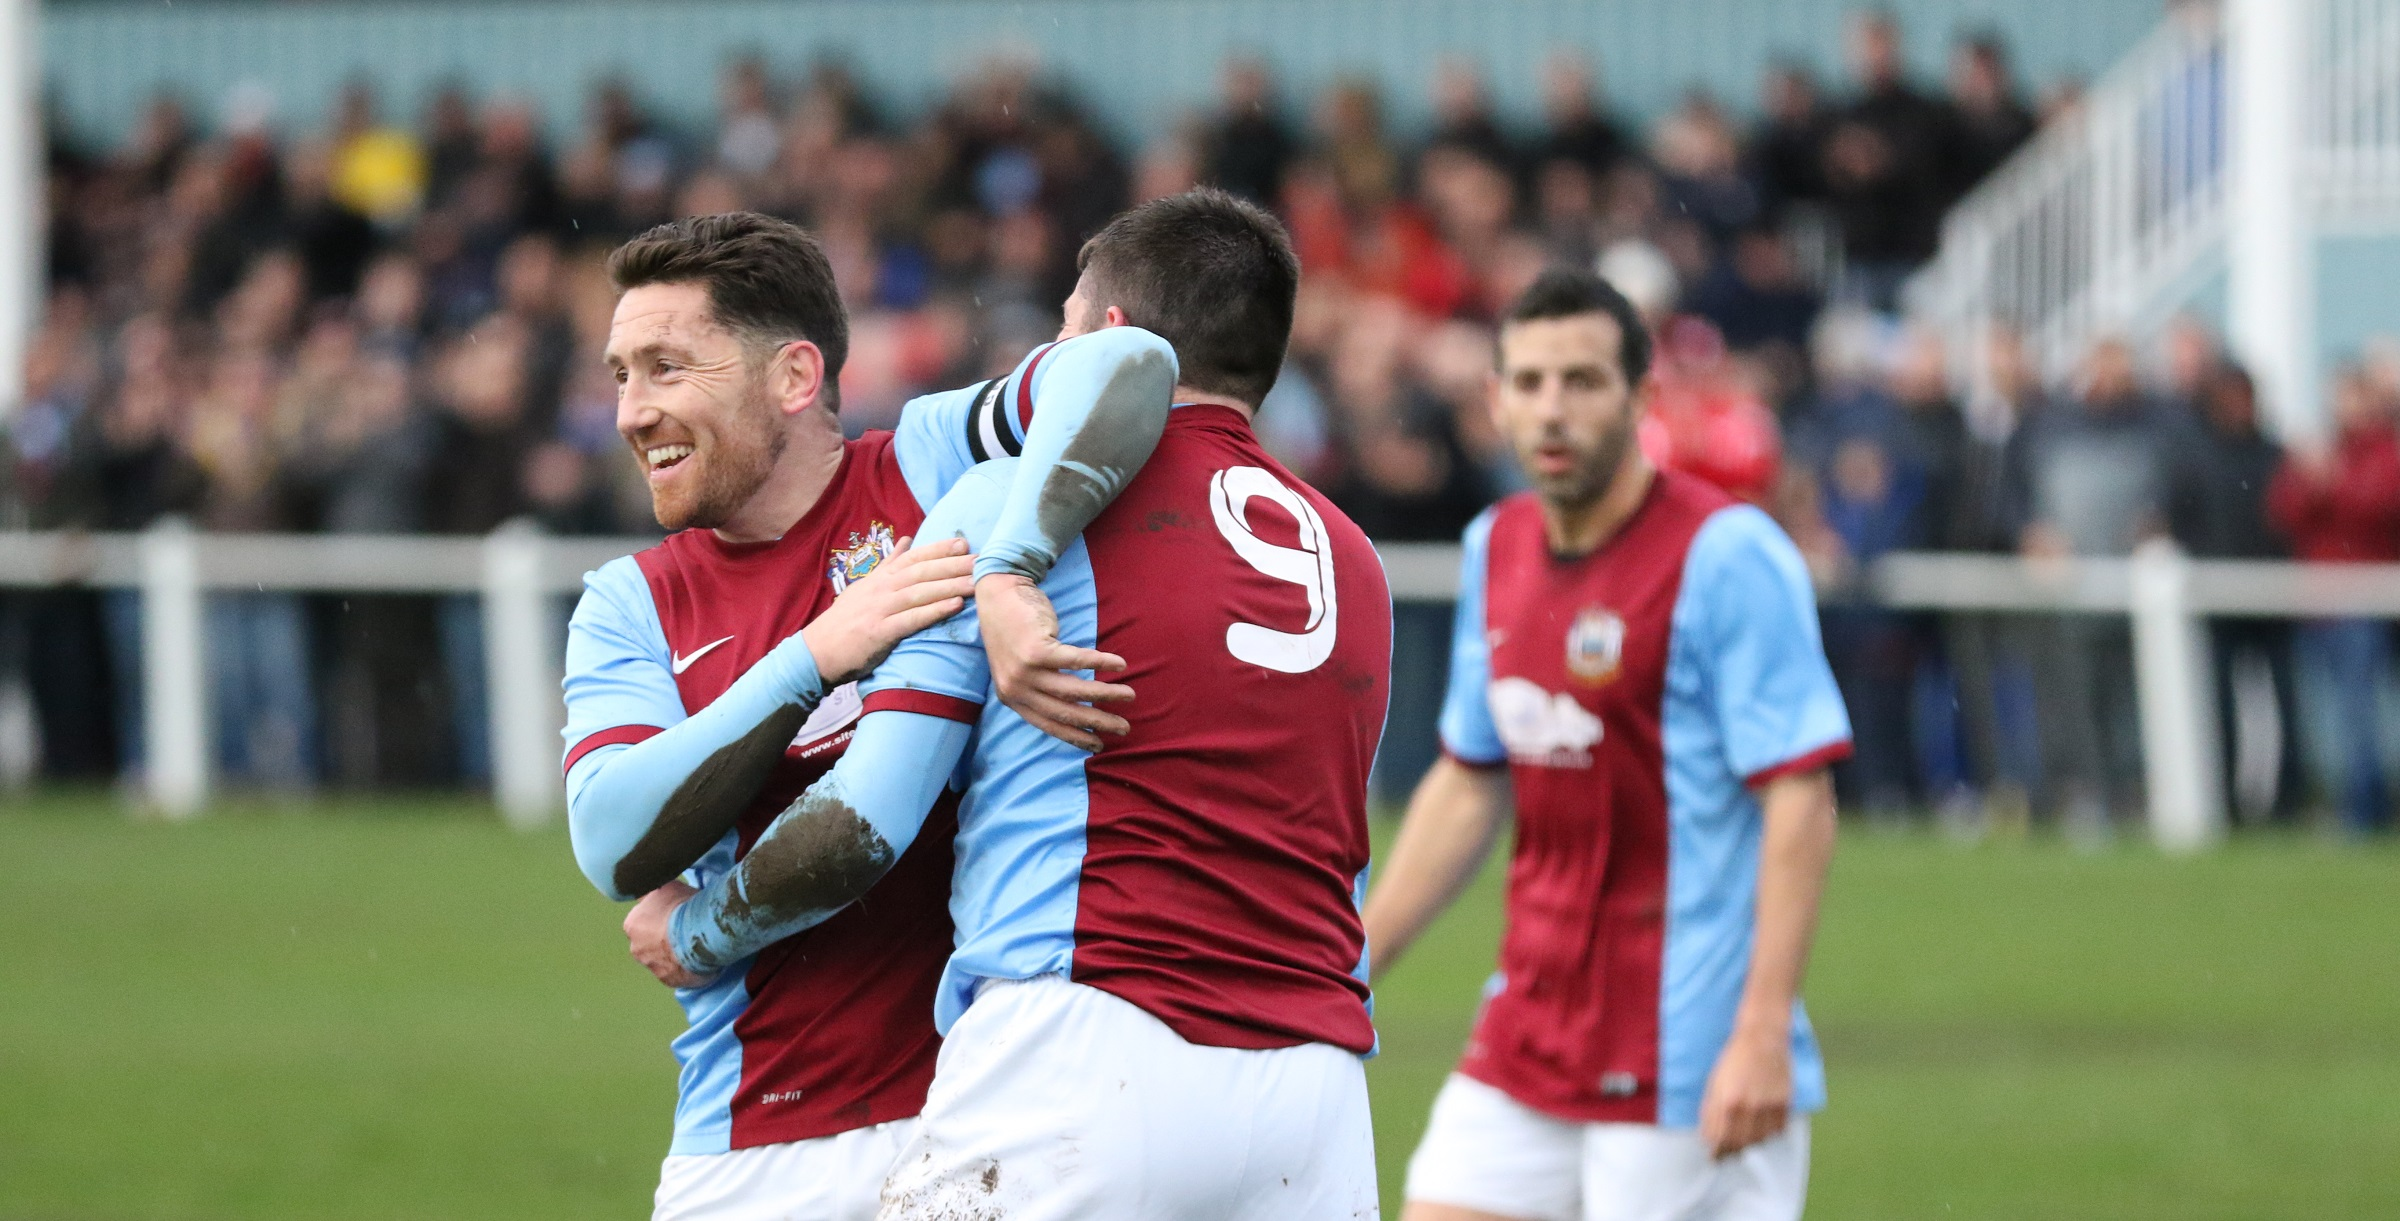 South Shields 9-1 Tow Law Town: Seventeenth heaven for Mariners